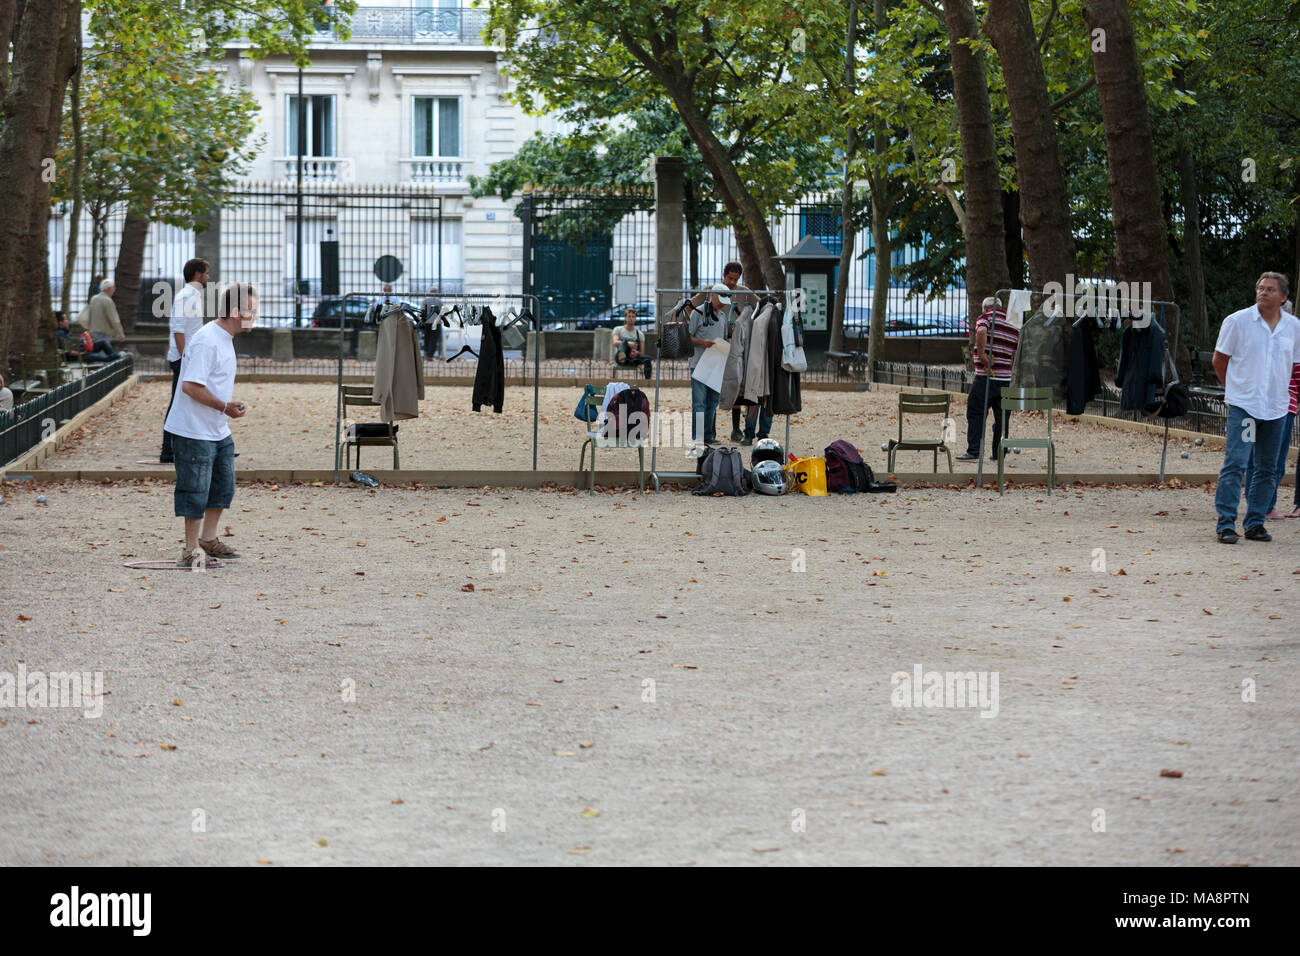 Playing petanque in the late afternoon in Luxemburg Garden in Paris, France - Stock Image